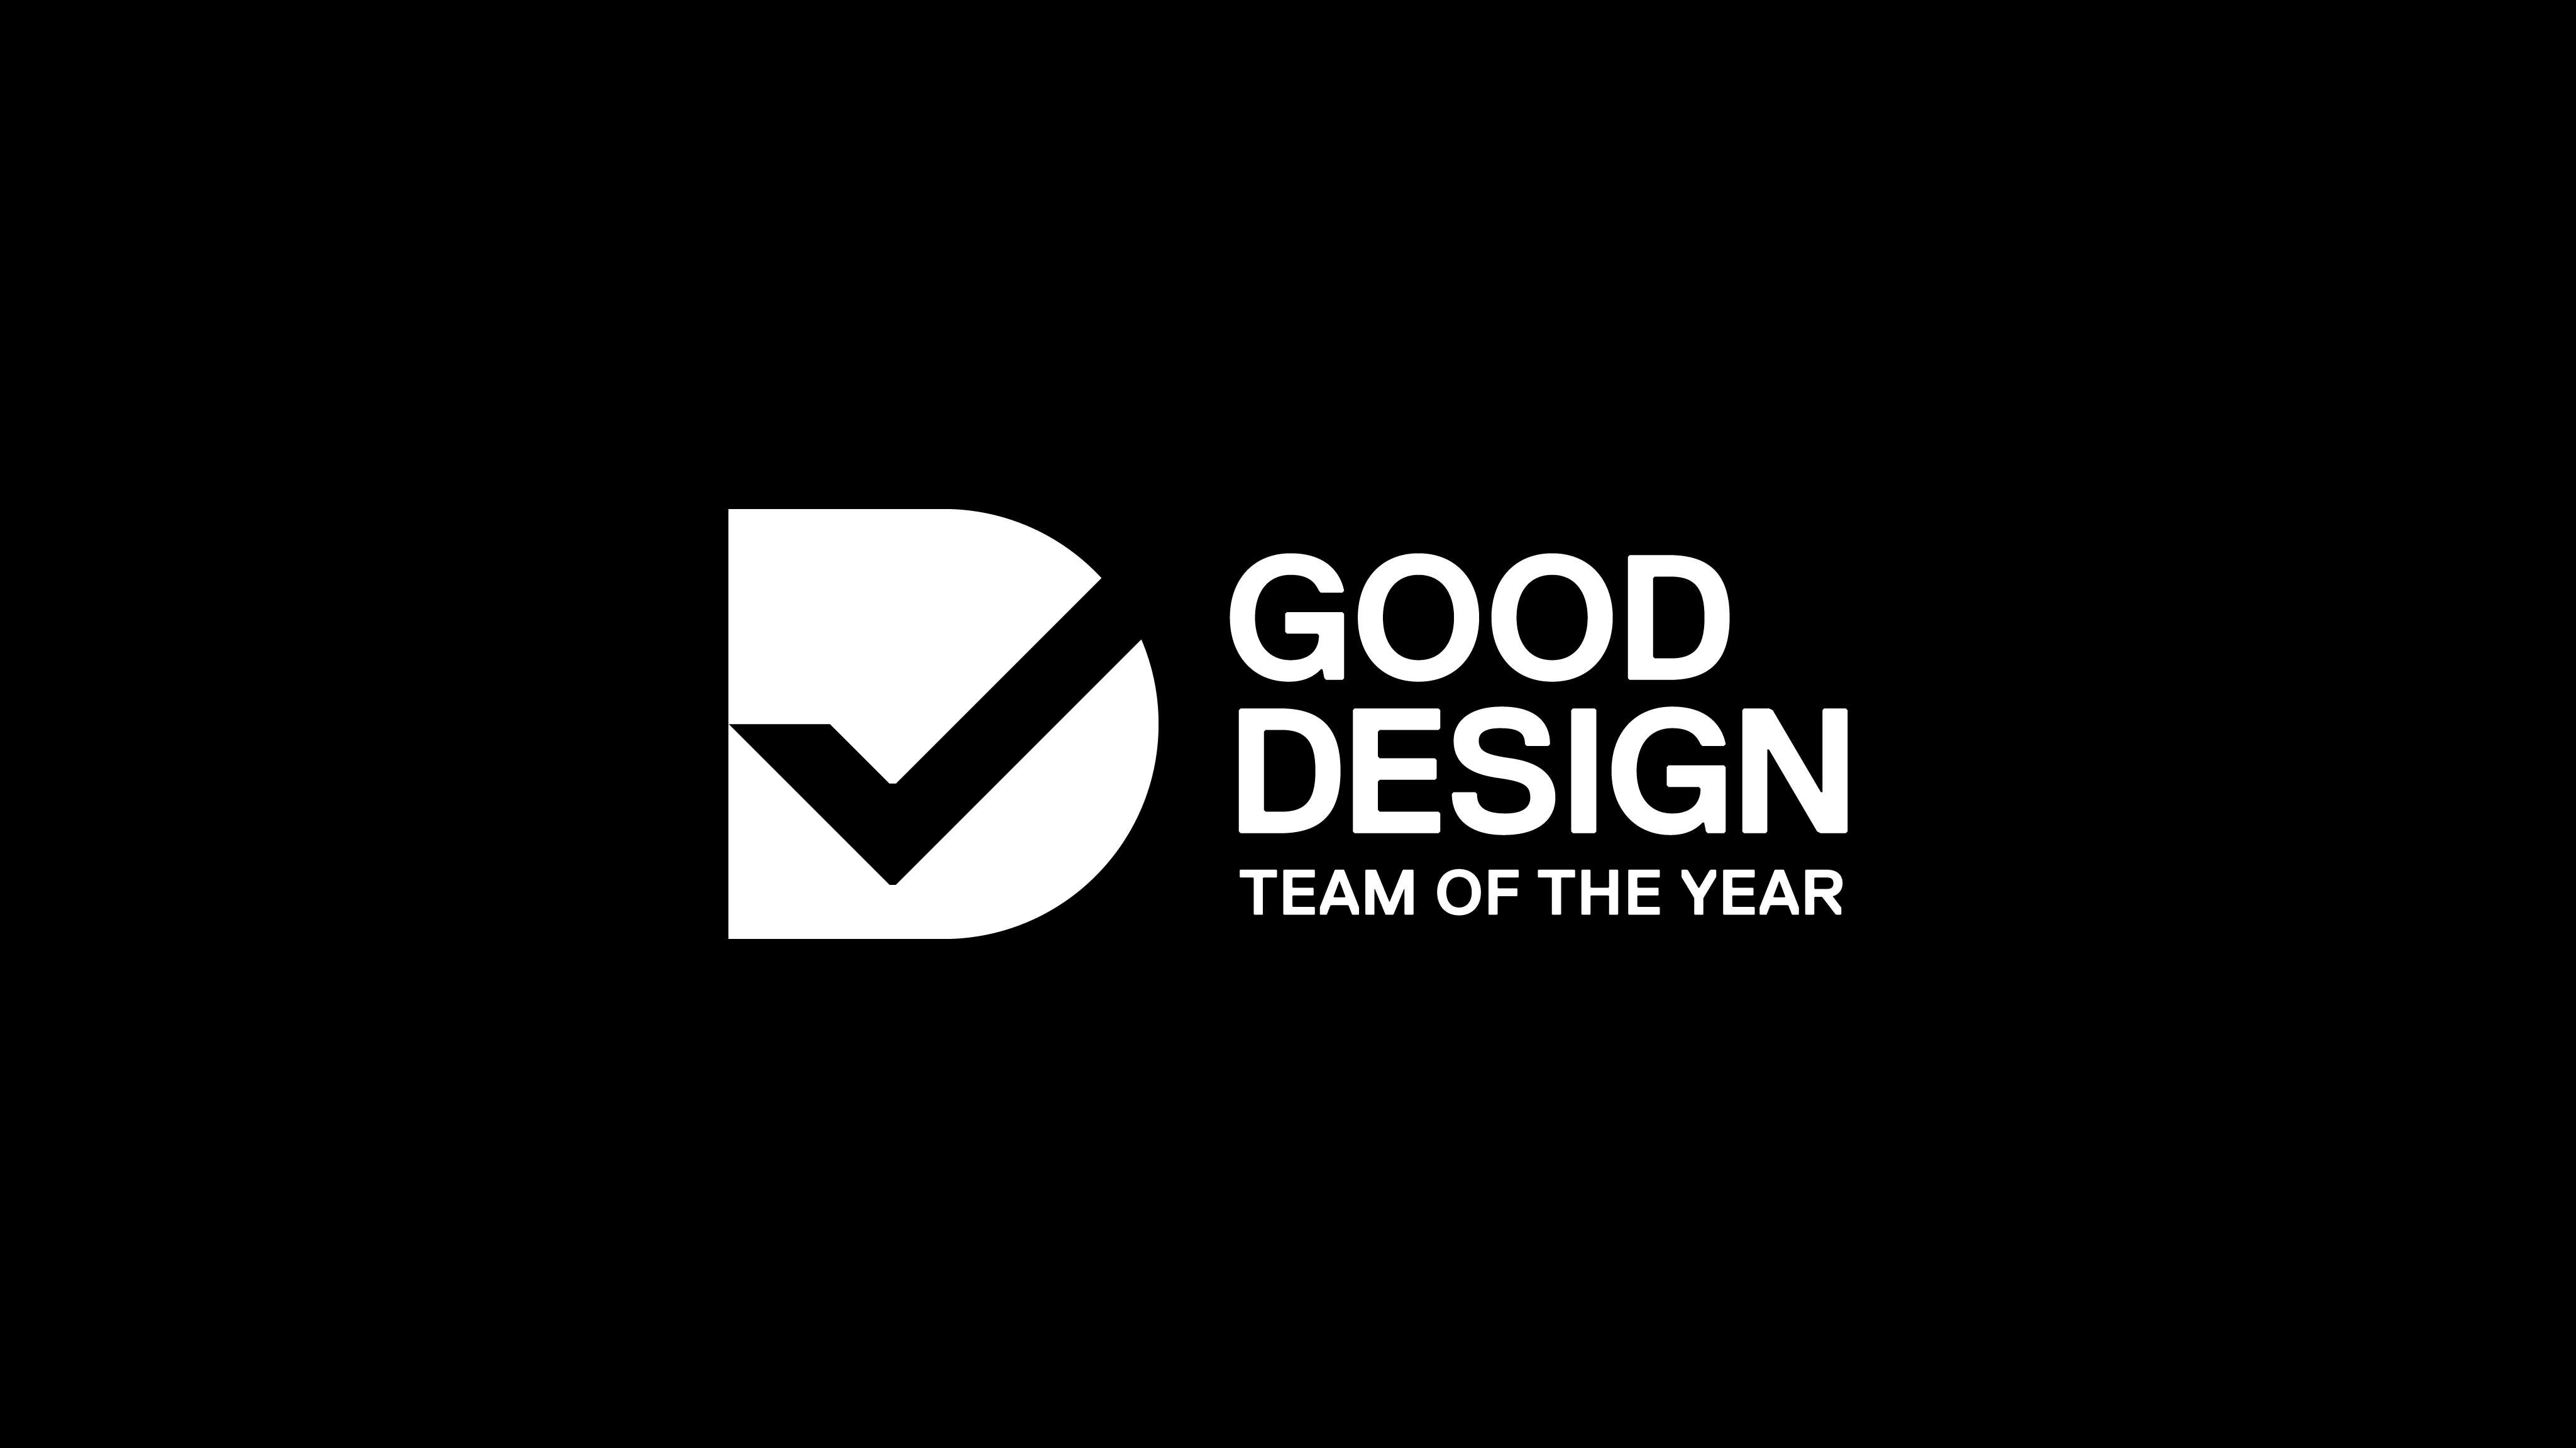 Good Design Team of the Year